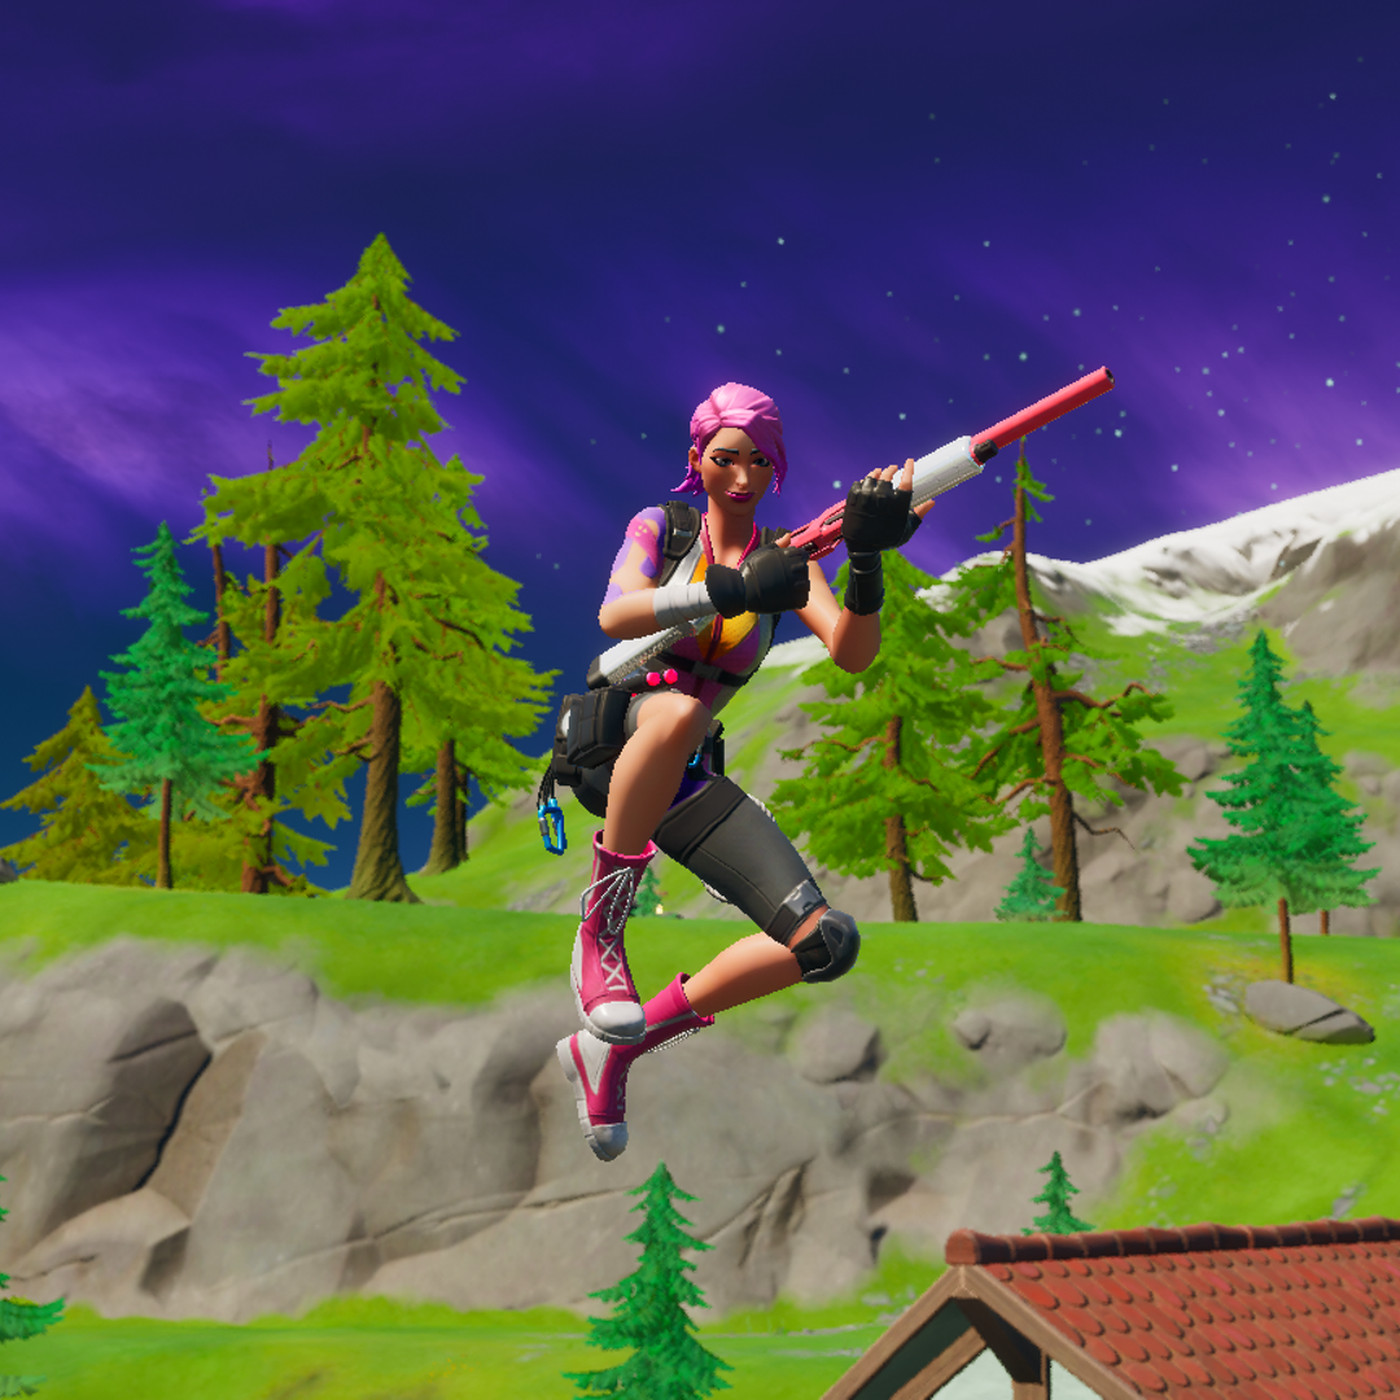 Fortnite Für Windows 10 epic seems to have fixed fortnite's battle pass xp problem